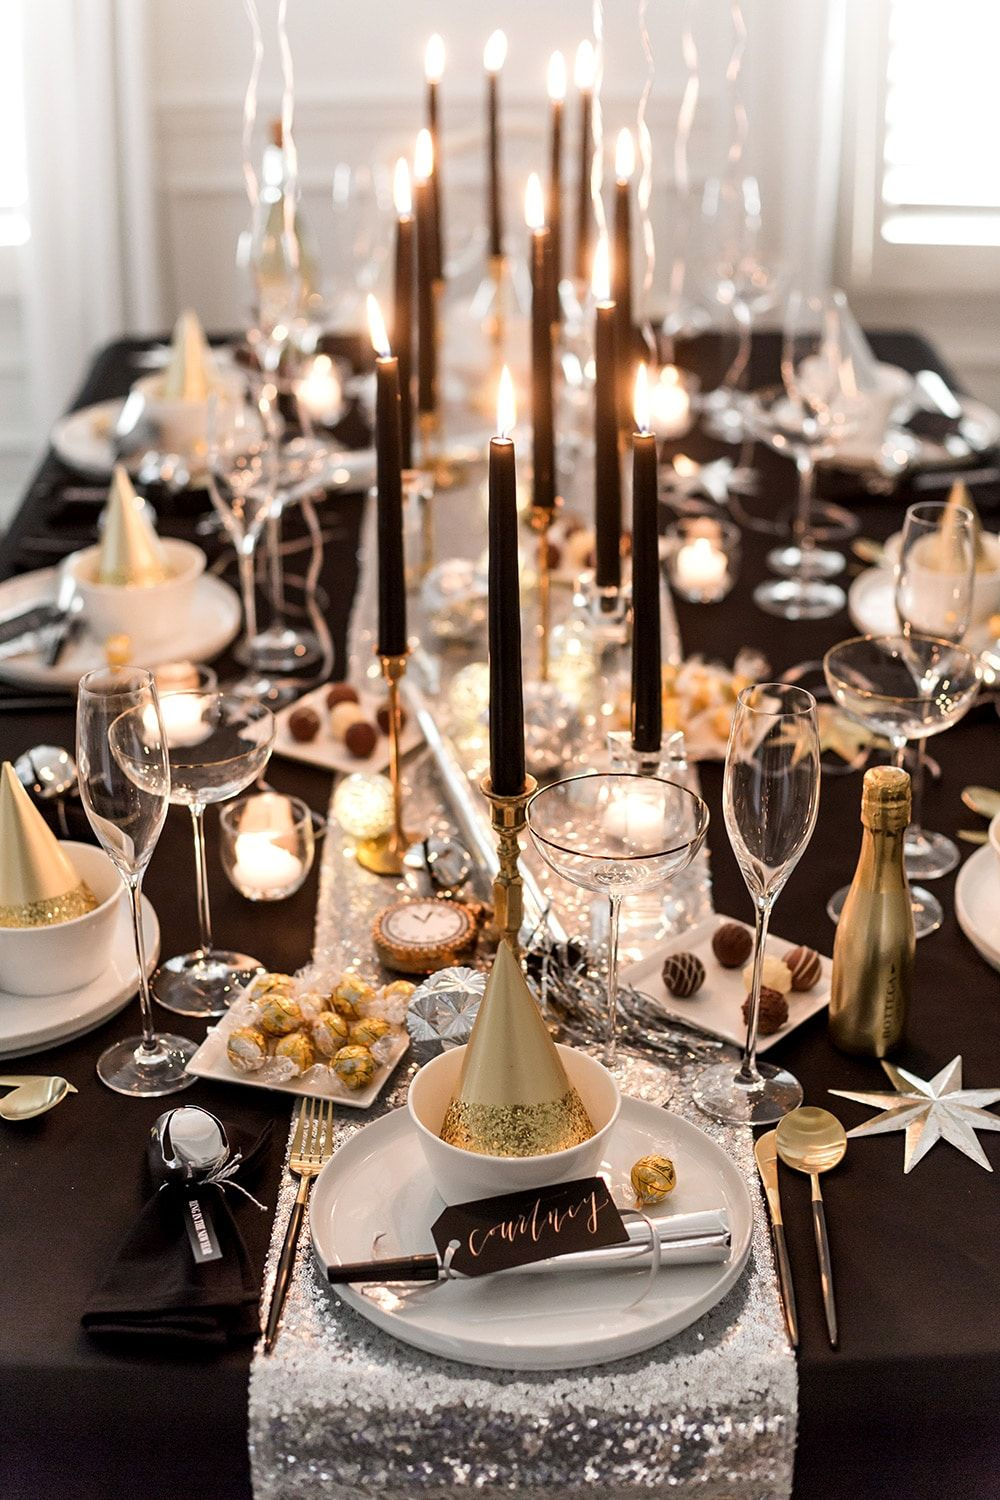 New Yaer's Eve Dinner Party